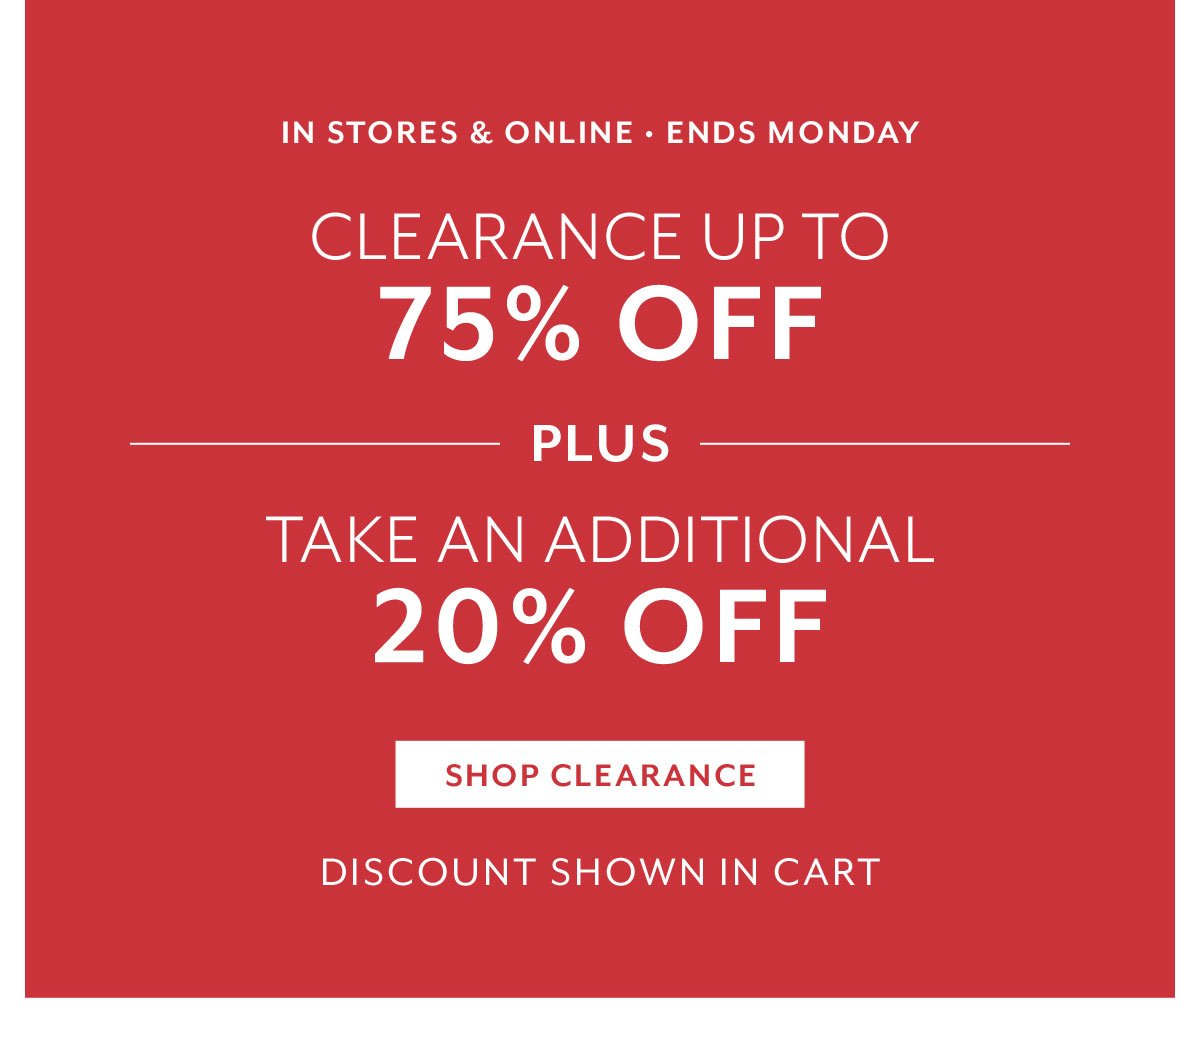 Clearance up to 75% Off + Take an Additional 20% Off